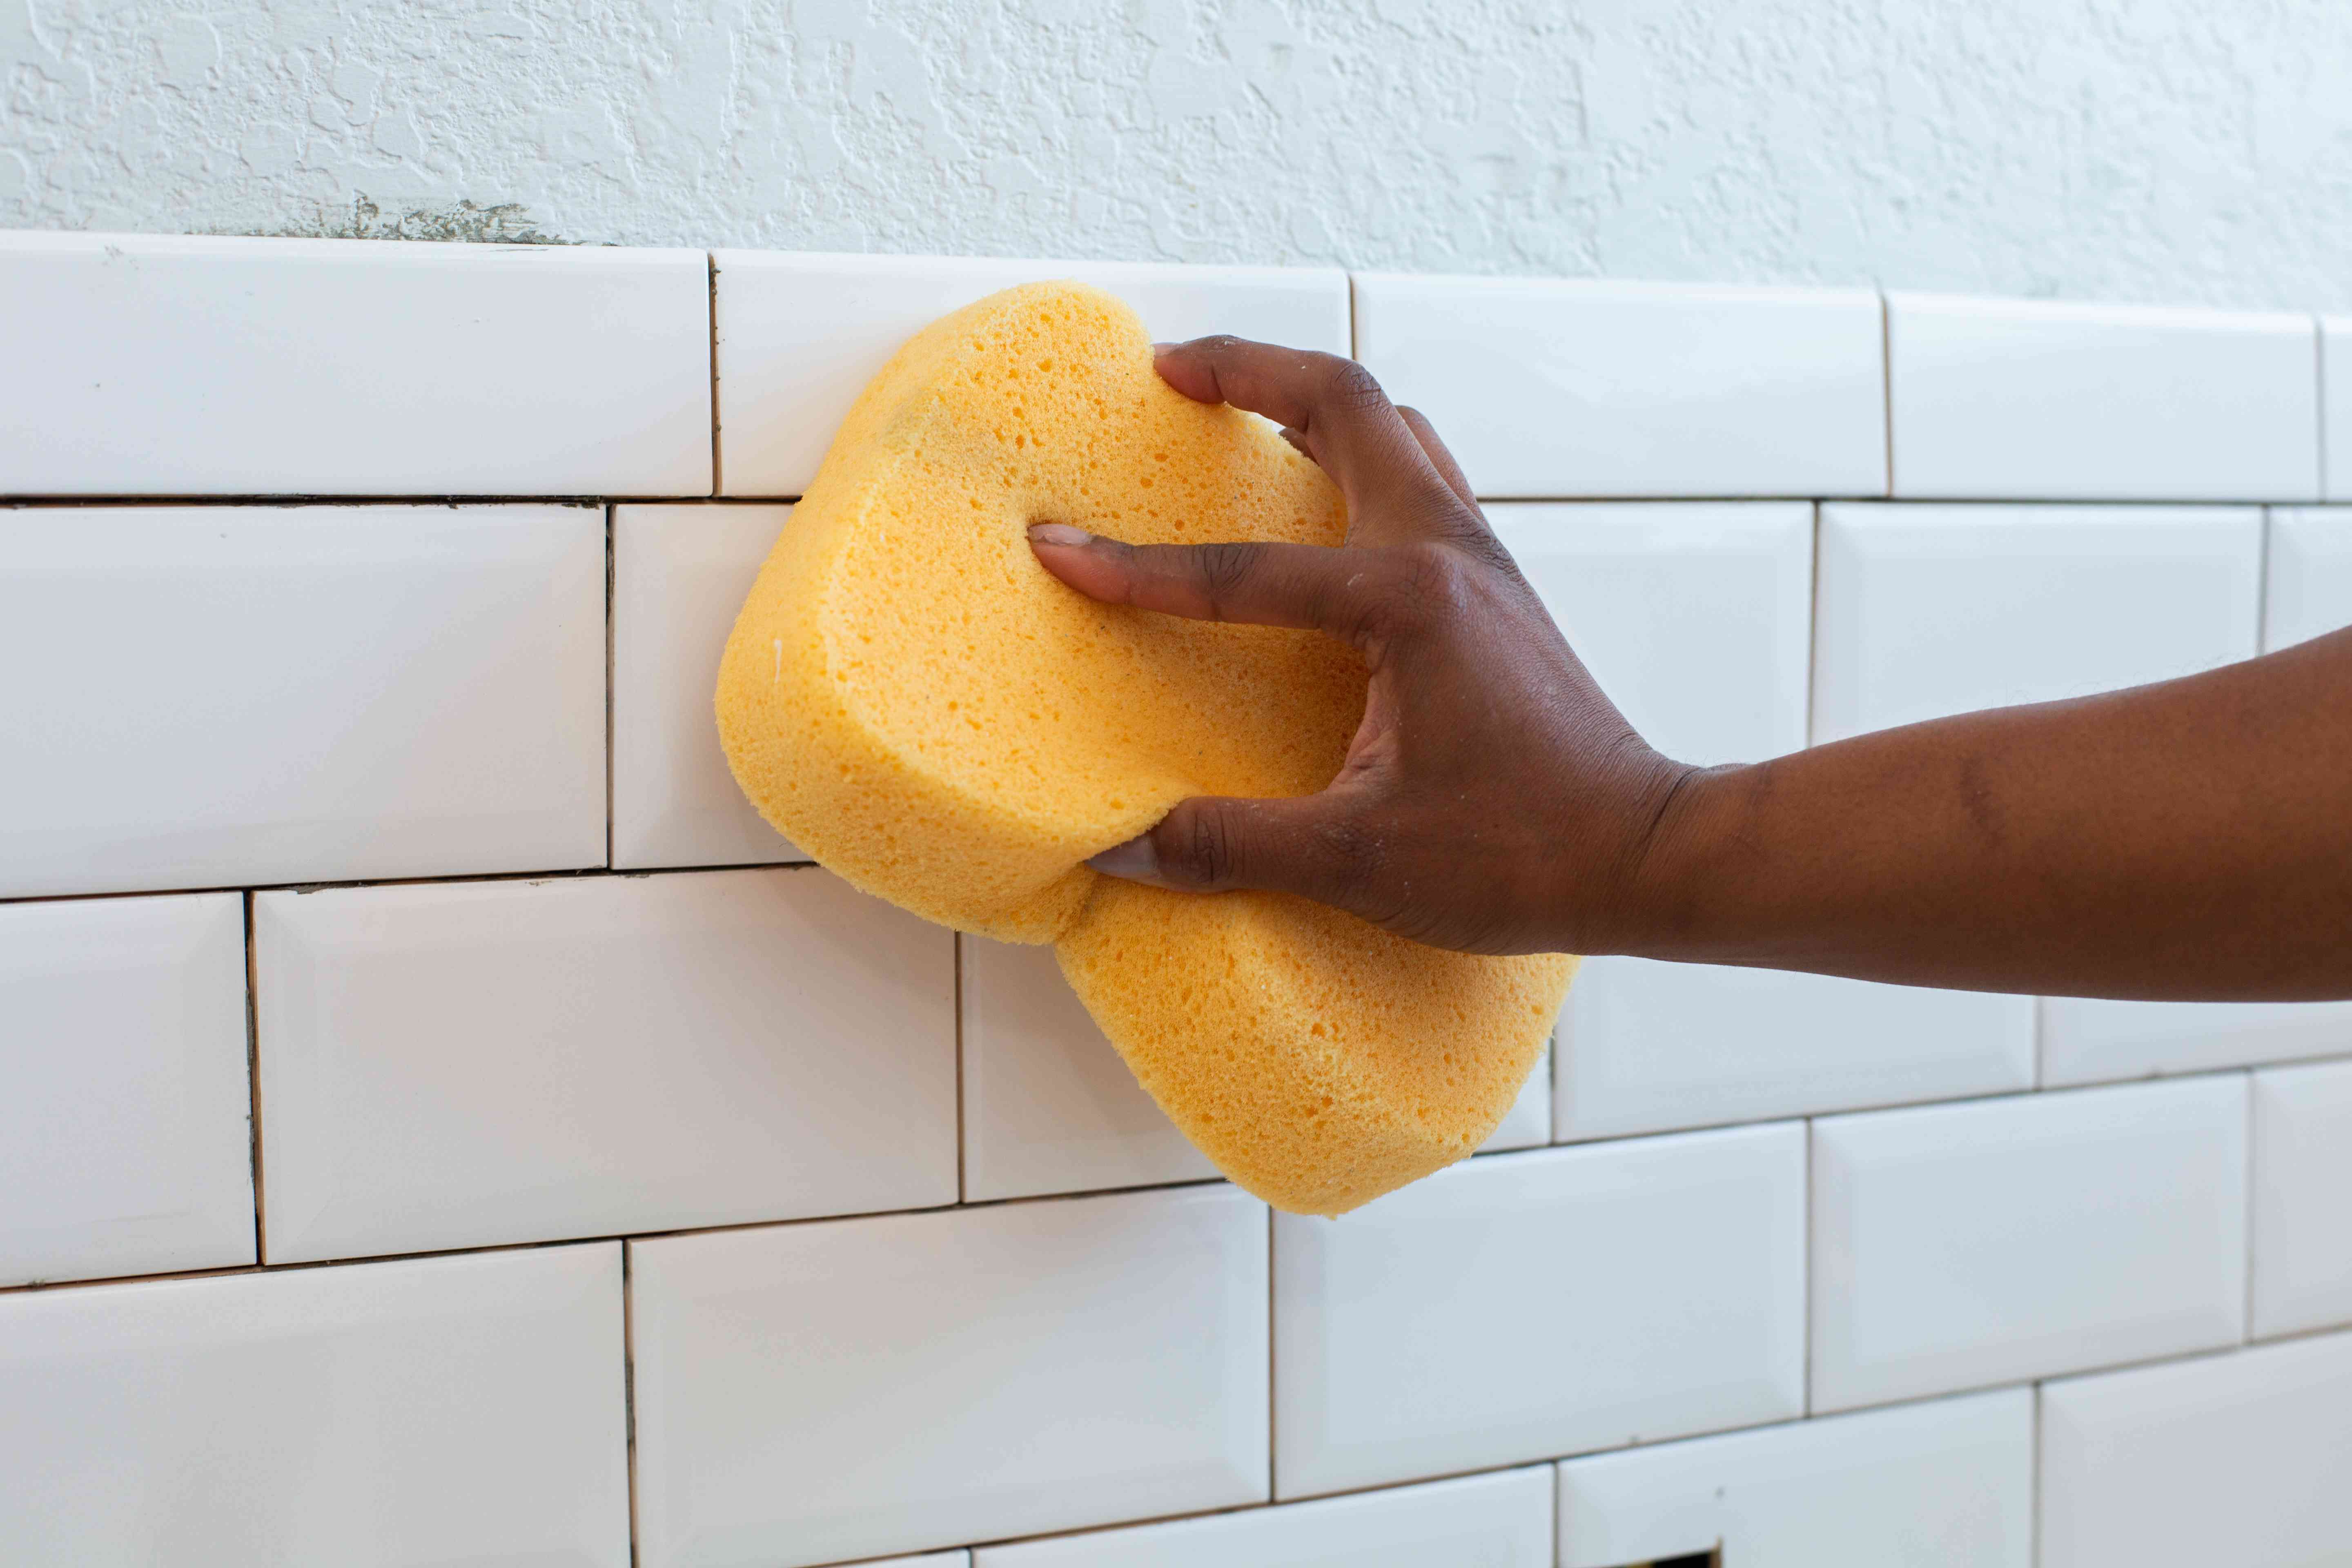 White ceramic tile cleaned with yellow sponge before applying grout